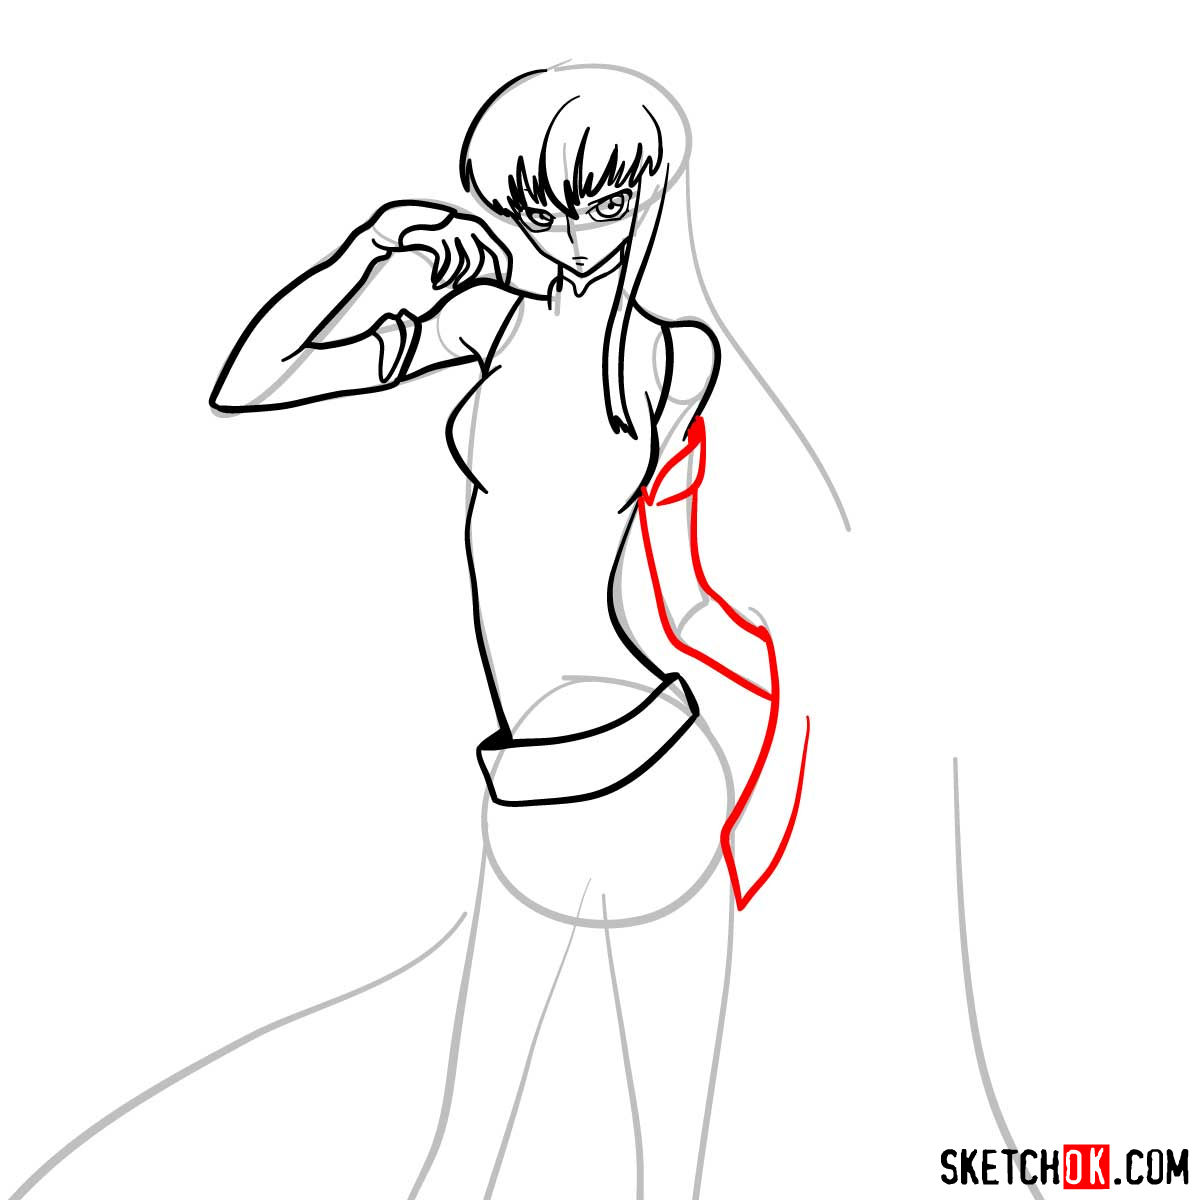 16 steps drawing guide of C.C. from Code Geass anime - step 10